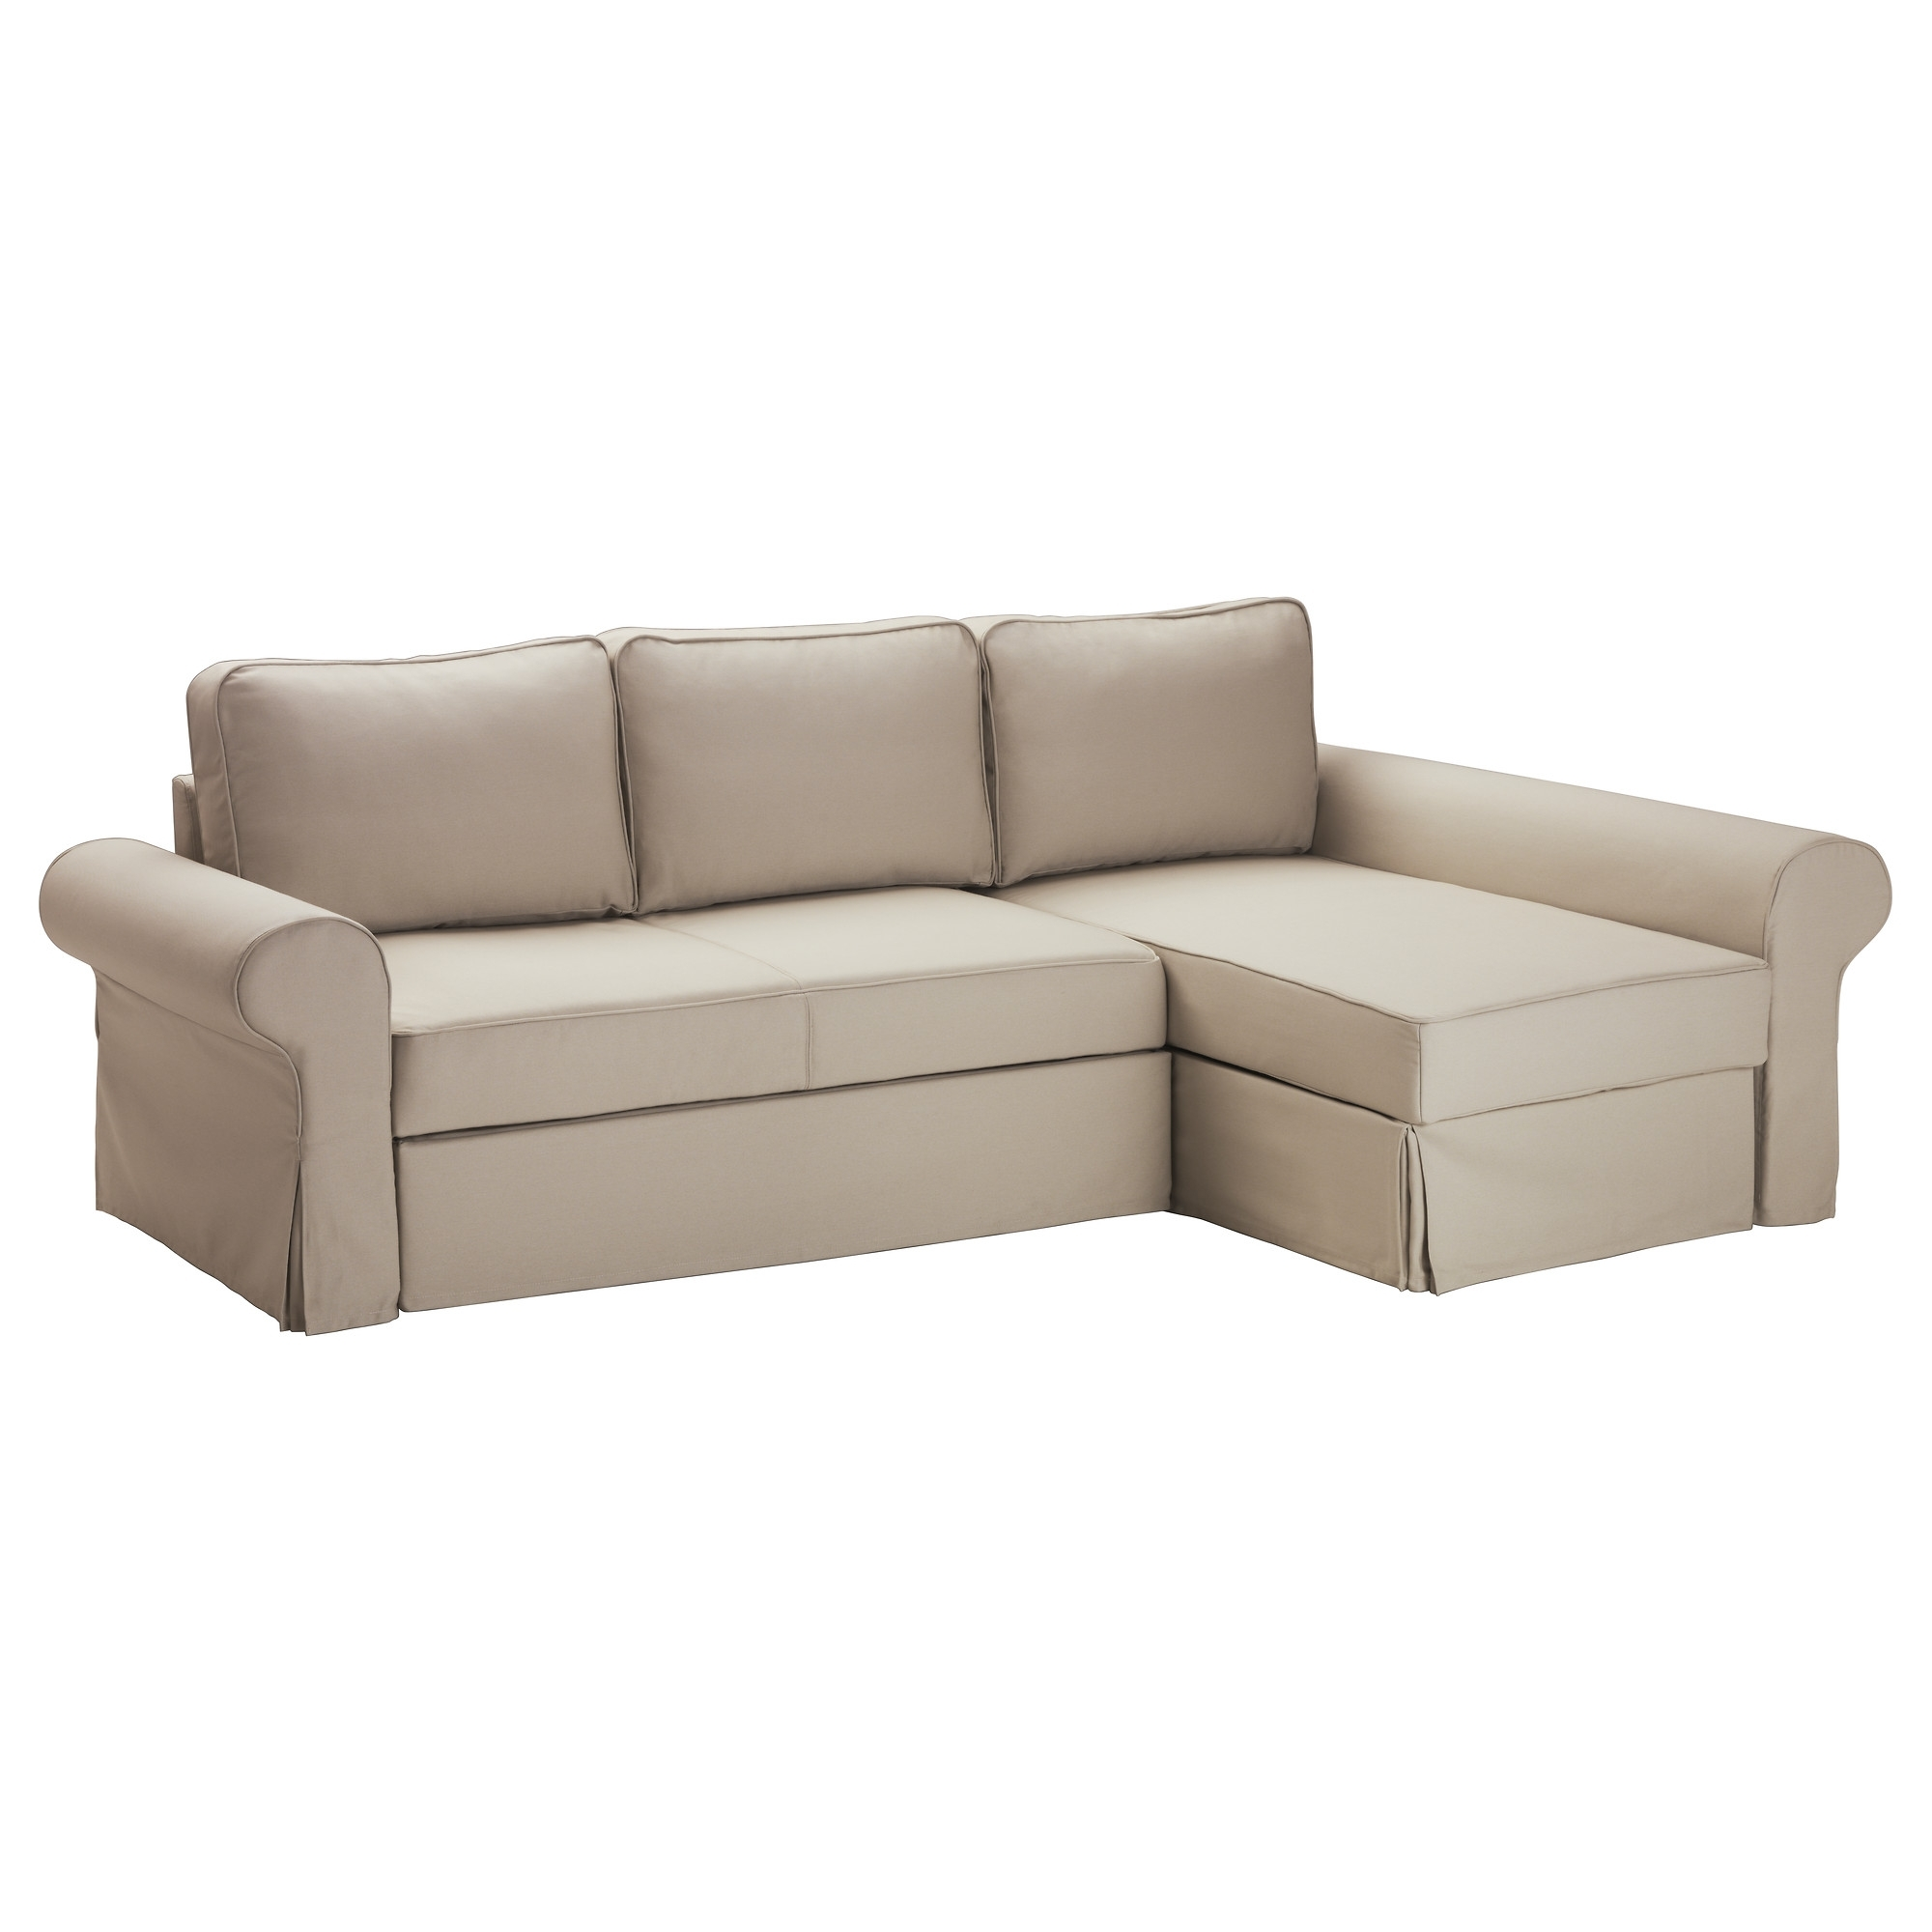 Backabro Sofa Bed With Chaise Longue – Tygelsjö Beige – Ikea Throughout Preferred Chaise Lounge Sofa Beds (View 10 of 15)